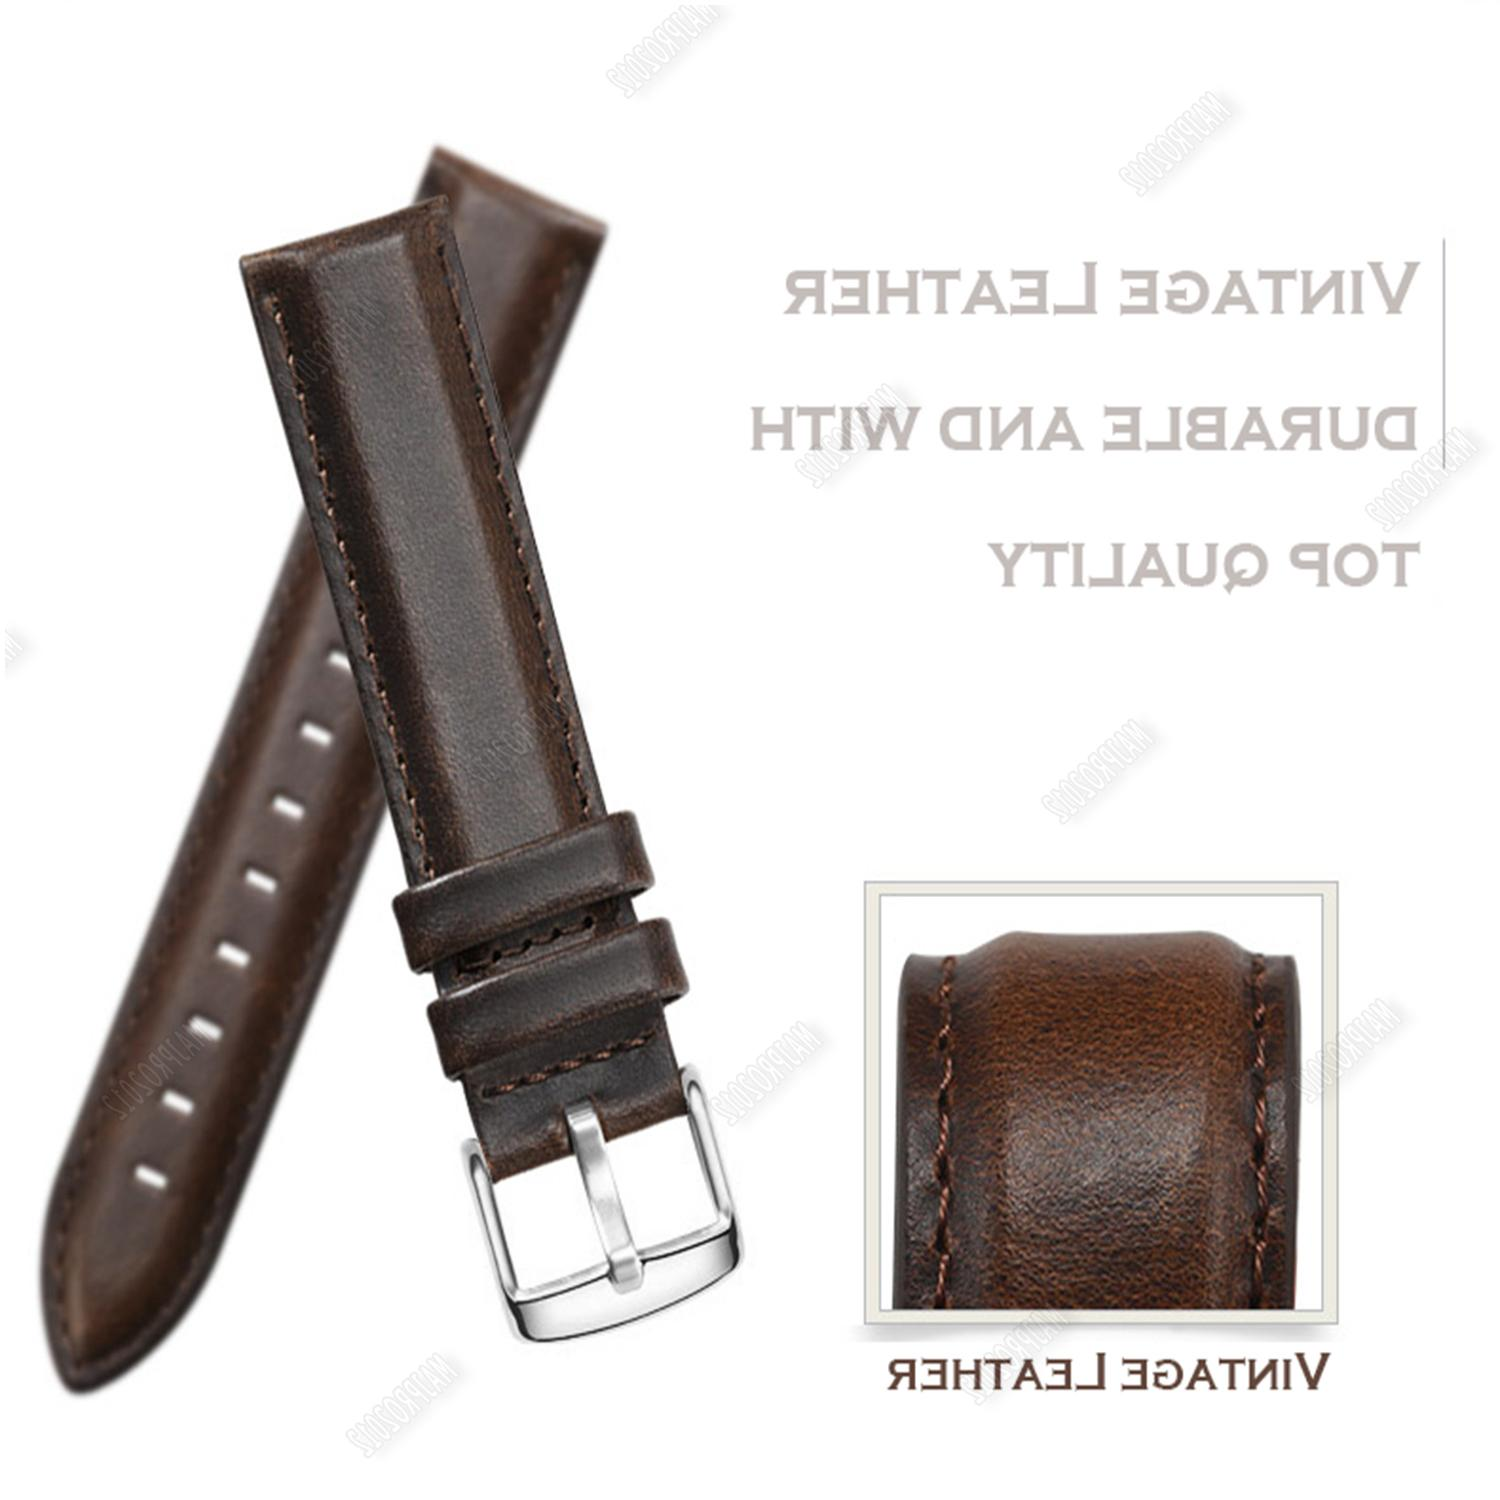 18 20 Retro Leather Strap Watch Quick Release